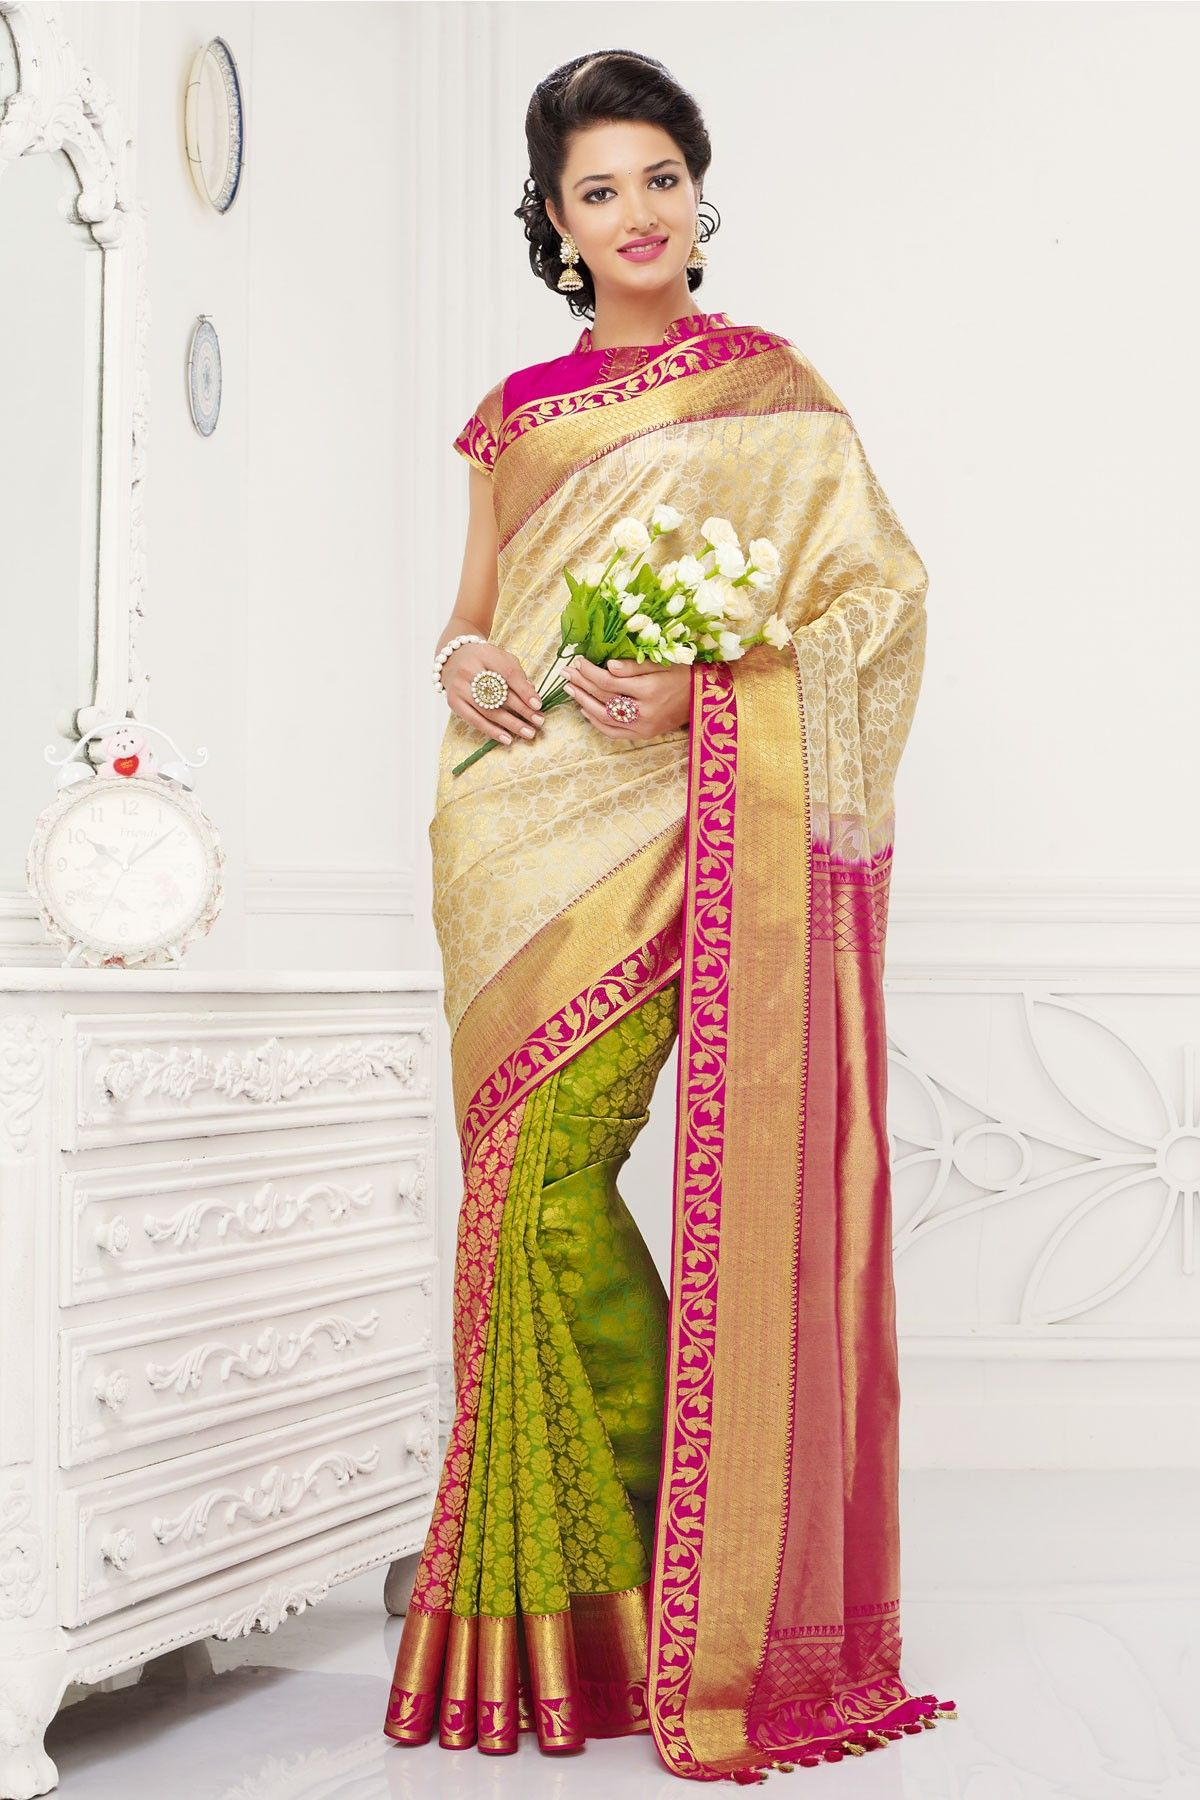 81a3939899 Off white colour Indian pure Kanjivaram silk Saree with rani pink & gold  border online shopping in Alexandria, Anaheim, Oakland, Hayward